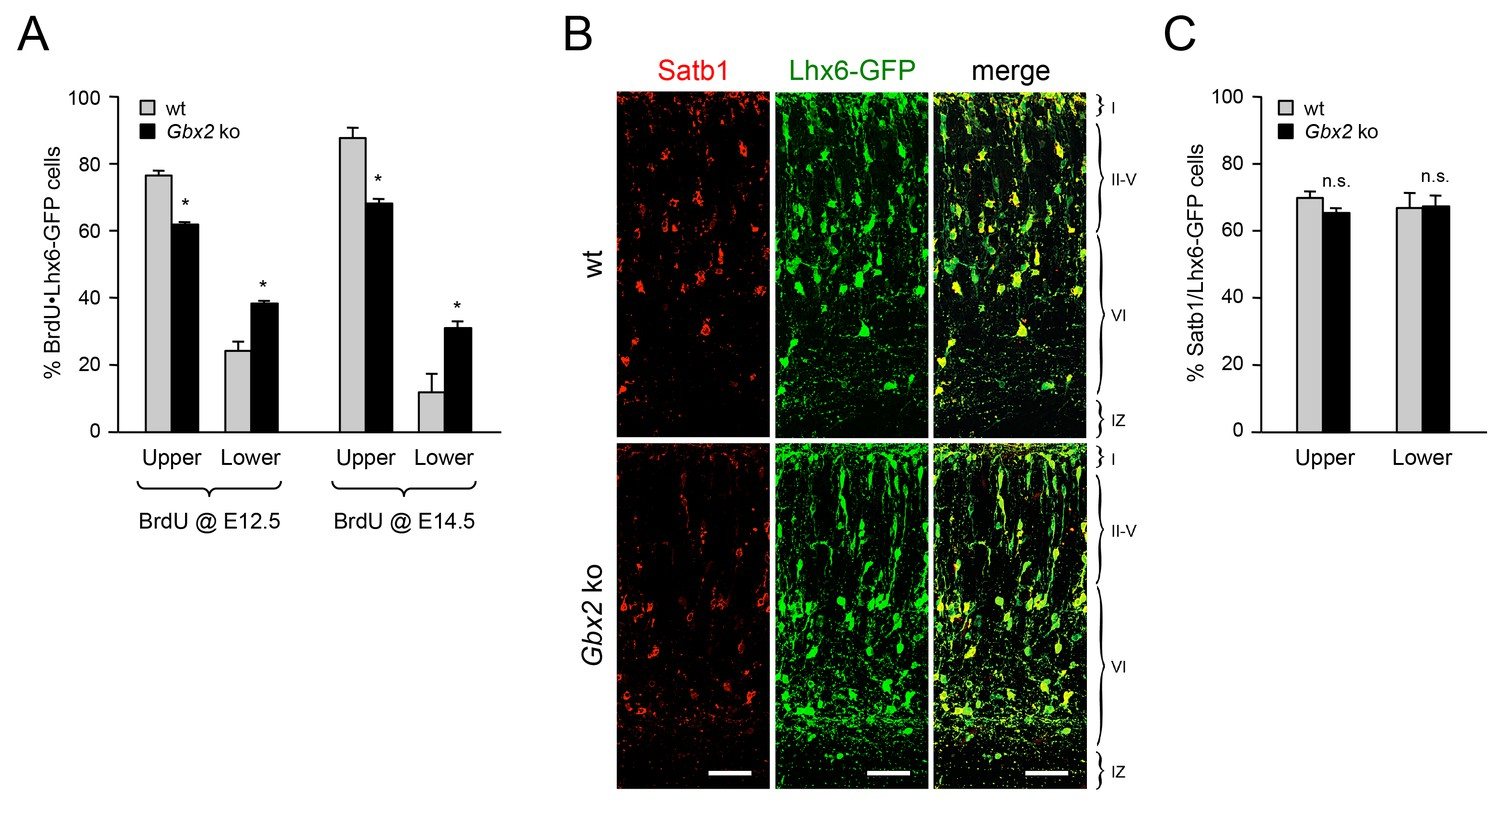 Thalamo Cortical Axons Regulate The Radial Dispersion Of Neocortical Weston Ct Wiring Diagram Lack Tcas In Gbx2 Mutant Mice Affects Laminar Distribution Different Classes Mge Derived Interneurons To A Similar Extent